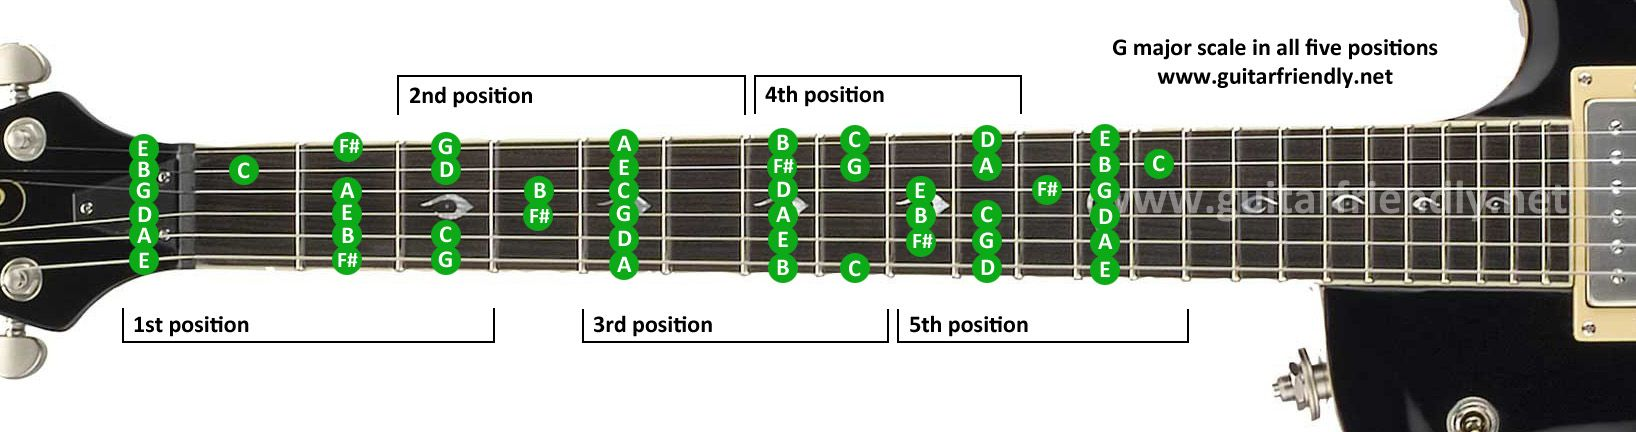 guitar scales | Major Guitar Scales Lesson: G Major Scale Positions ...